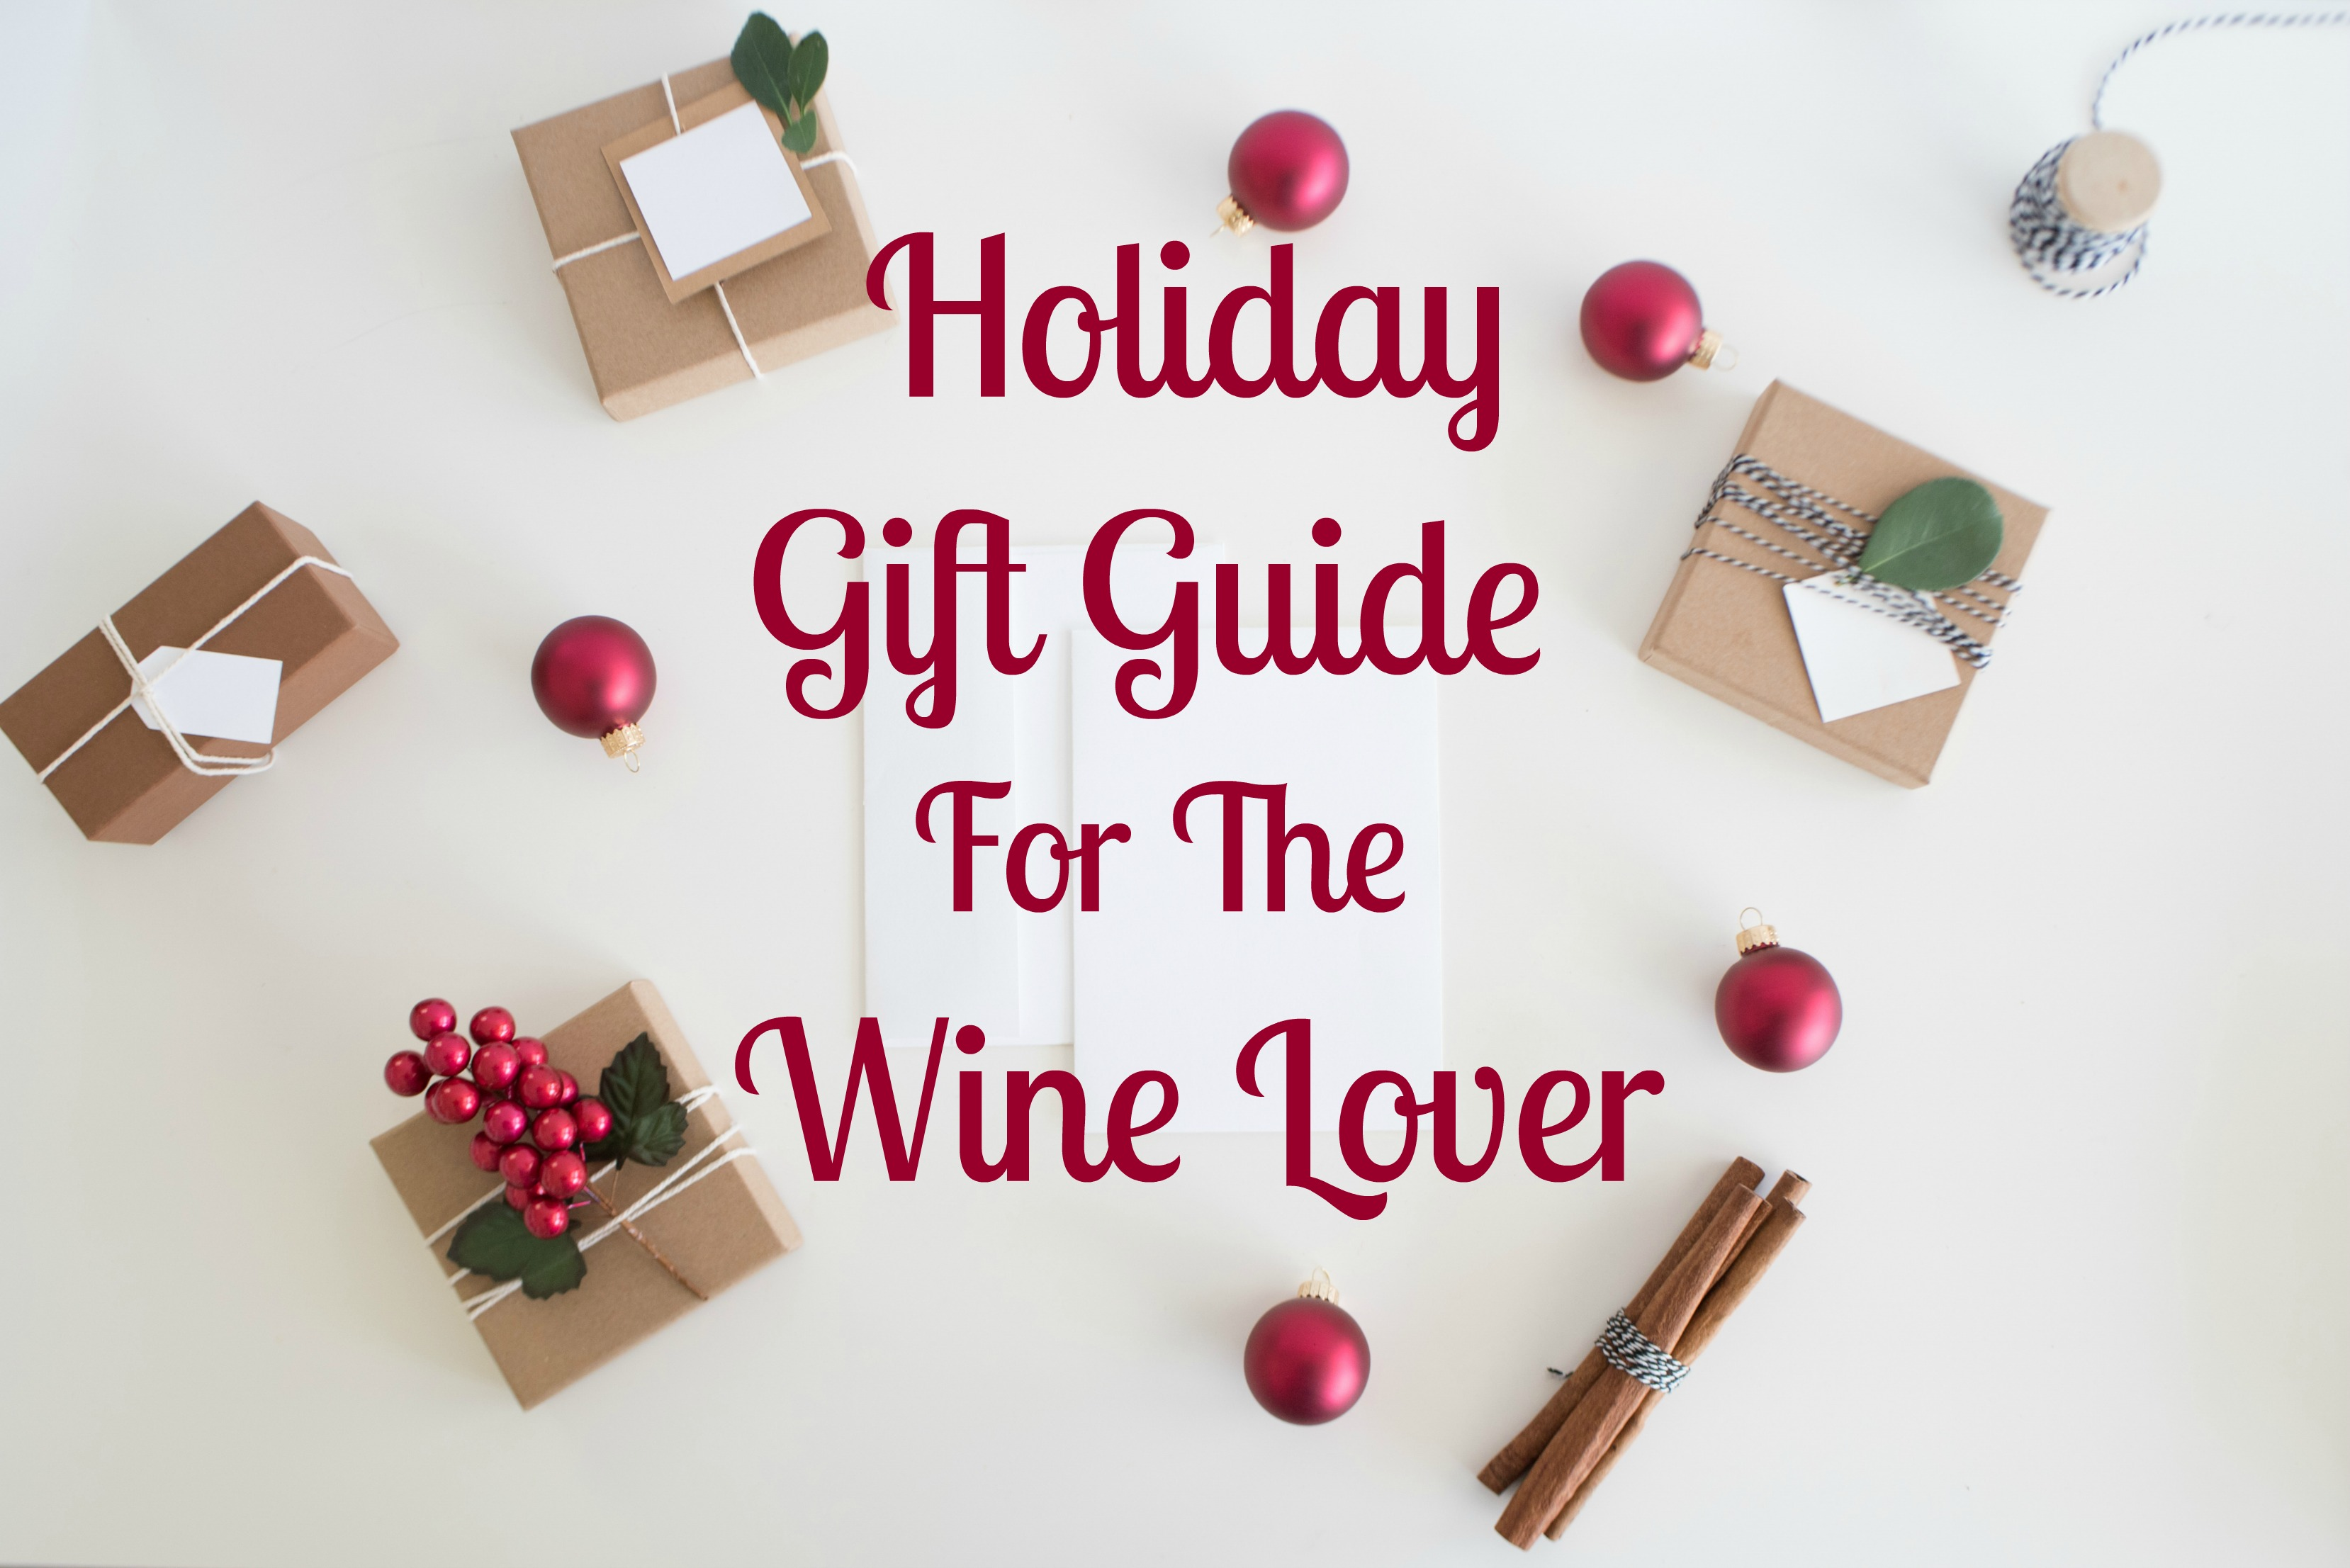 Holiday Gifts for Wine Lovers